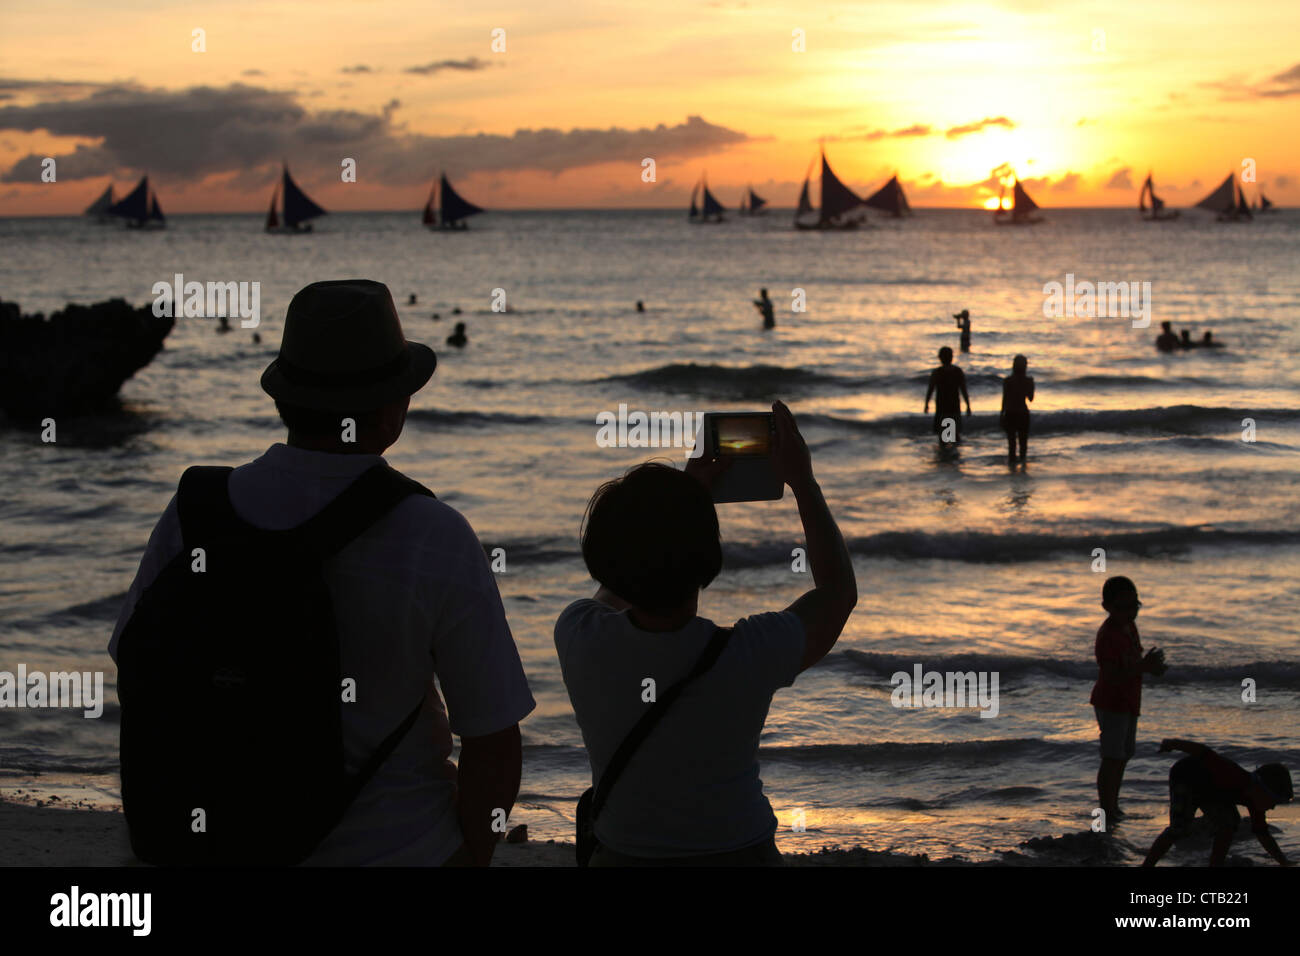 Two tourists making pictures at sunset, Boracay, Panay Island, Visayas, Philippines - Stock Image